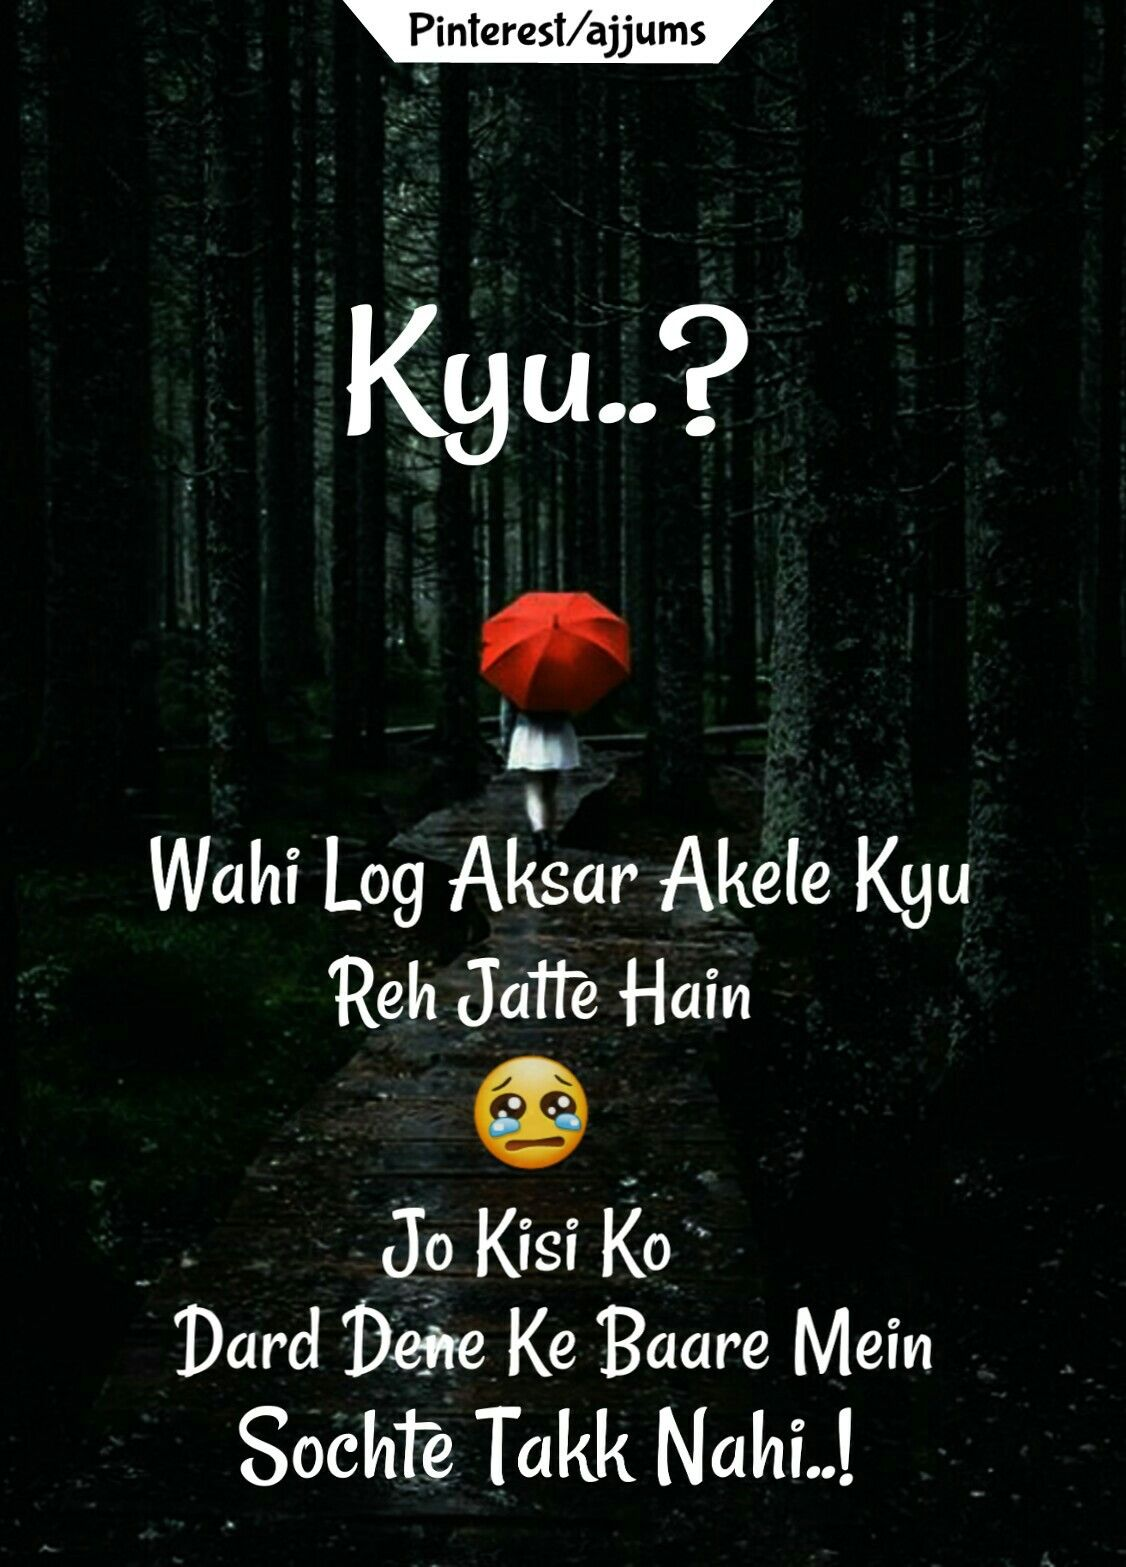 True Sad Qutoes in Hindi #SadQuotes #TureLines #ajjums